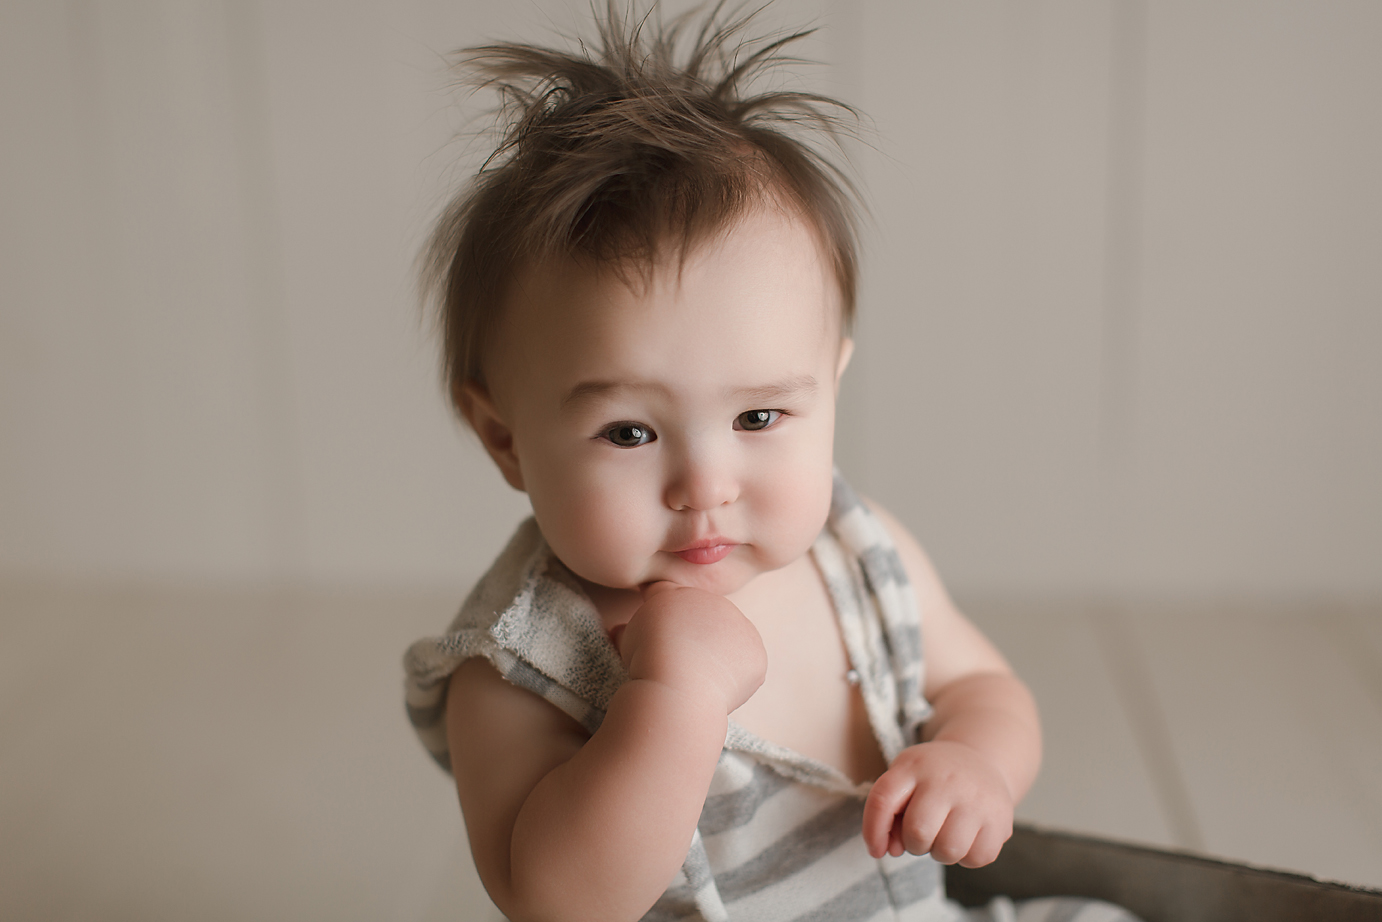 orange-county-baby-photographer-irvine-studio-cutest-baby-boy-stripes-funny.jpg